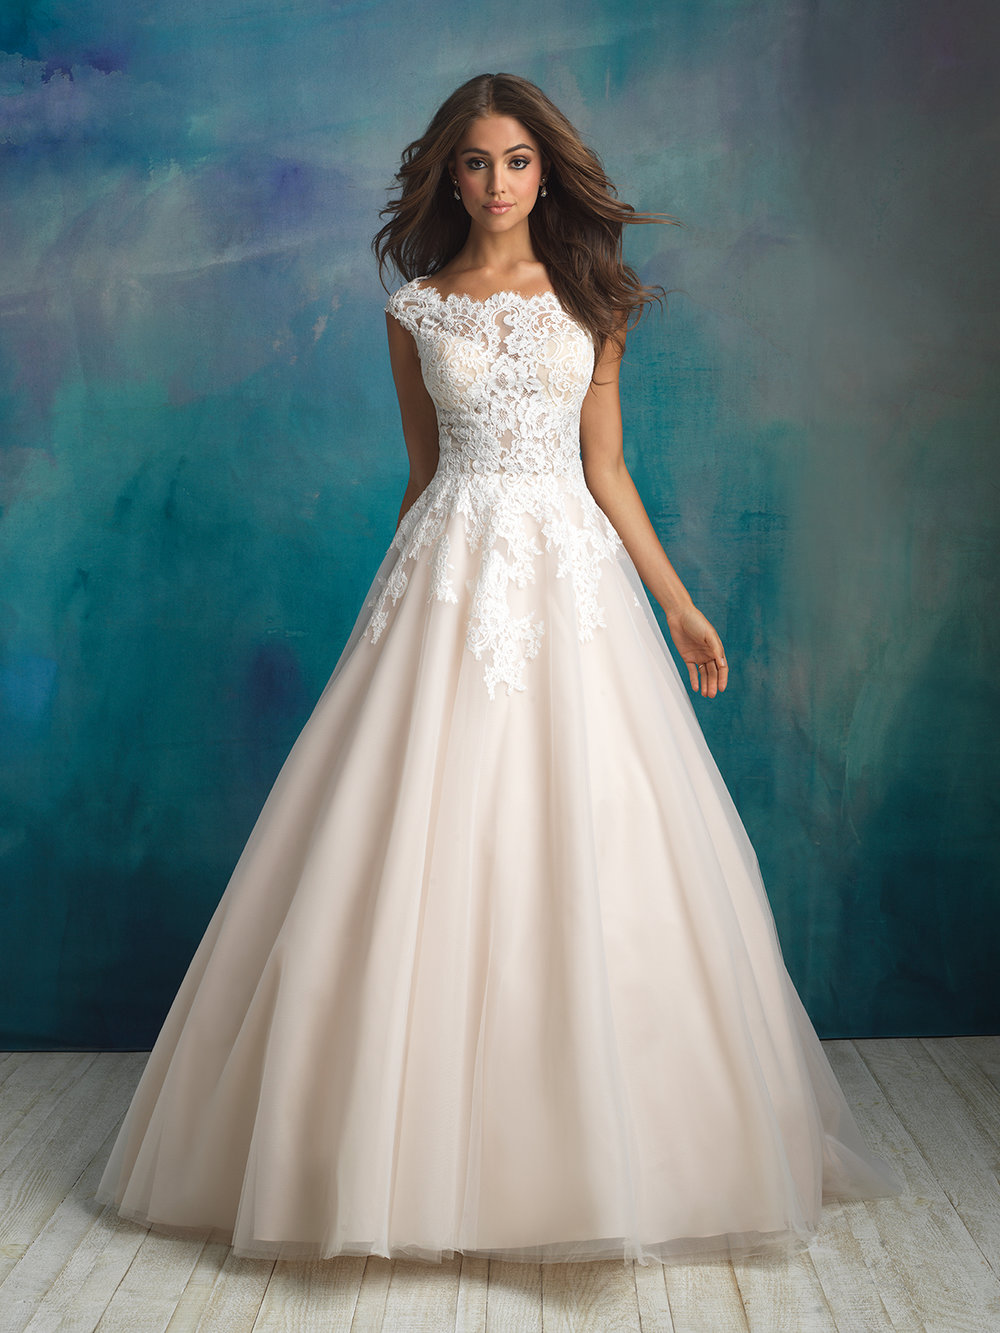 Style 9520 - A bateau neckline and delicate cap sleeves compose the bodice of this tulle ballgown.